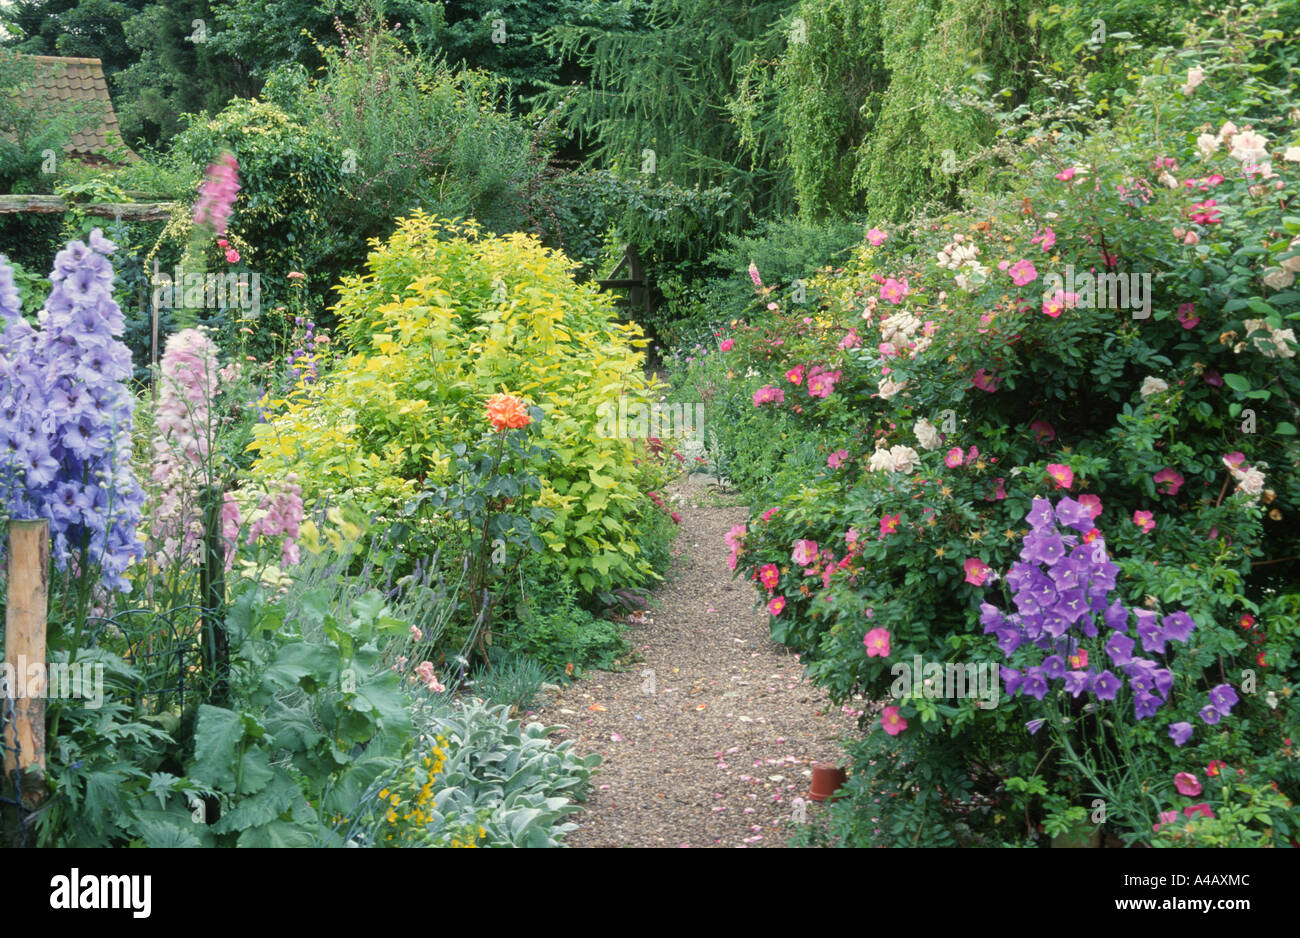 Delphinium And Roses In Cottage Garden With Gravel Path Stock